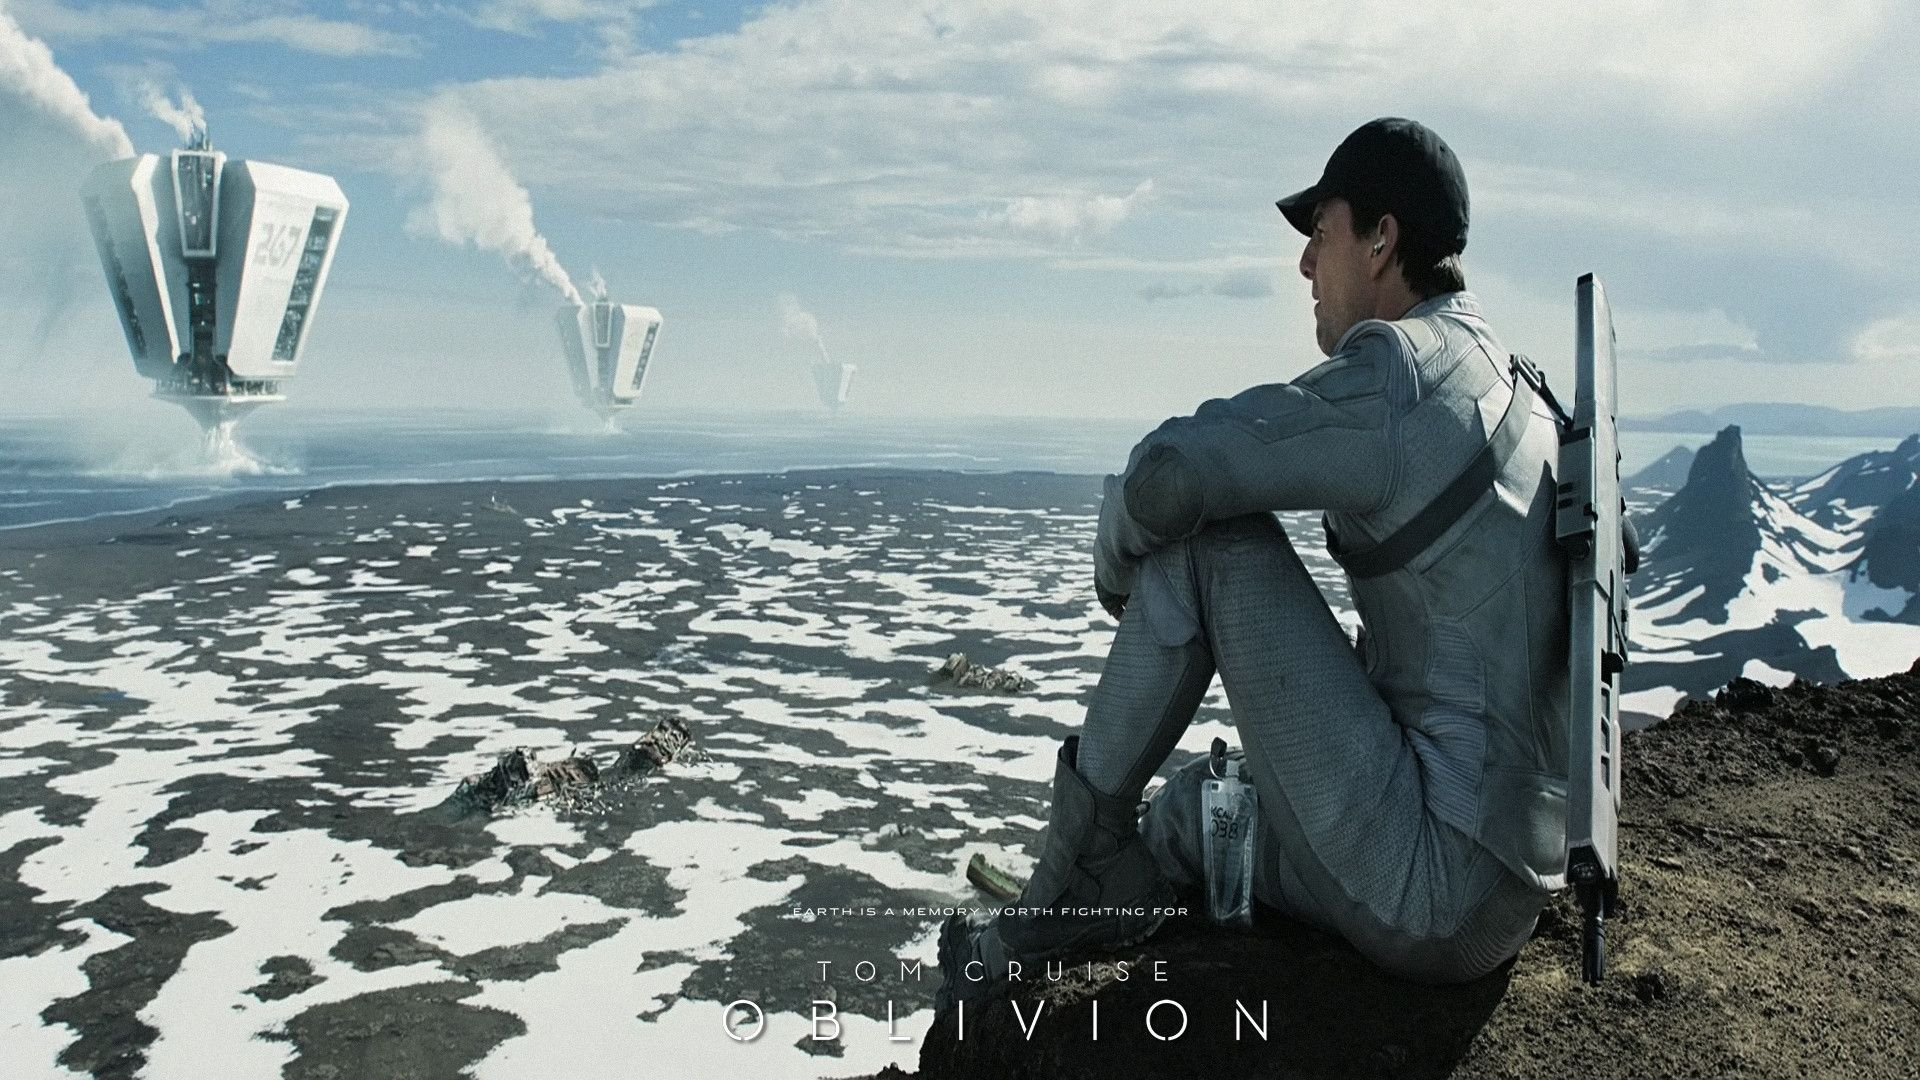 scifi themes oblivion movie wallpaper in hd resolution with tom